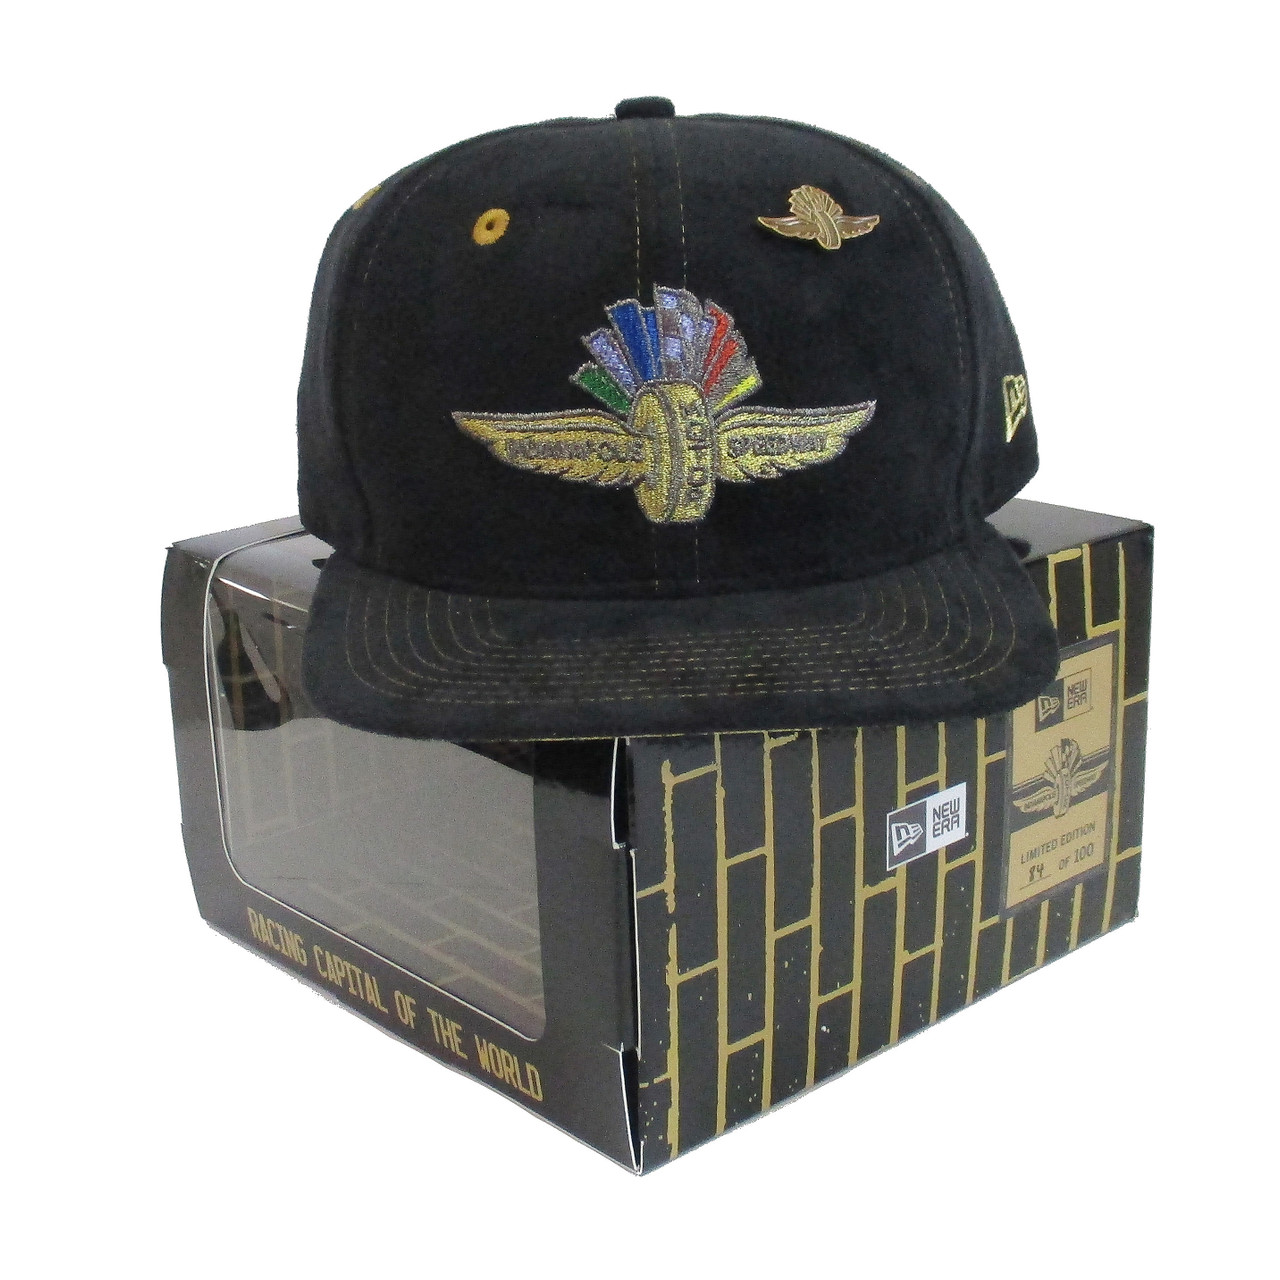 buy popular 9bbcc 9fb50 Wing Wheel and Flag Limited Edition Box Suede Lapel Pin New Era 9FIFTY Cap  - Indianapolis Motor Speedway INDYCAR